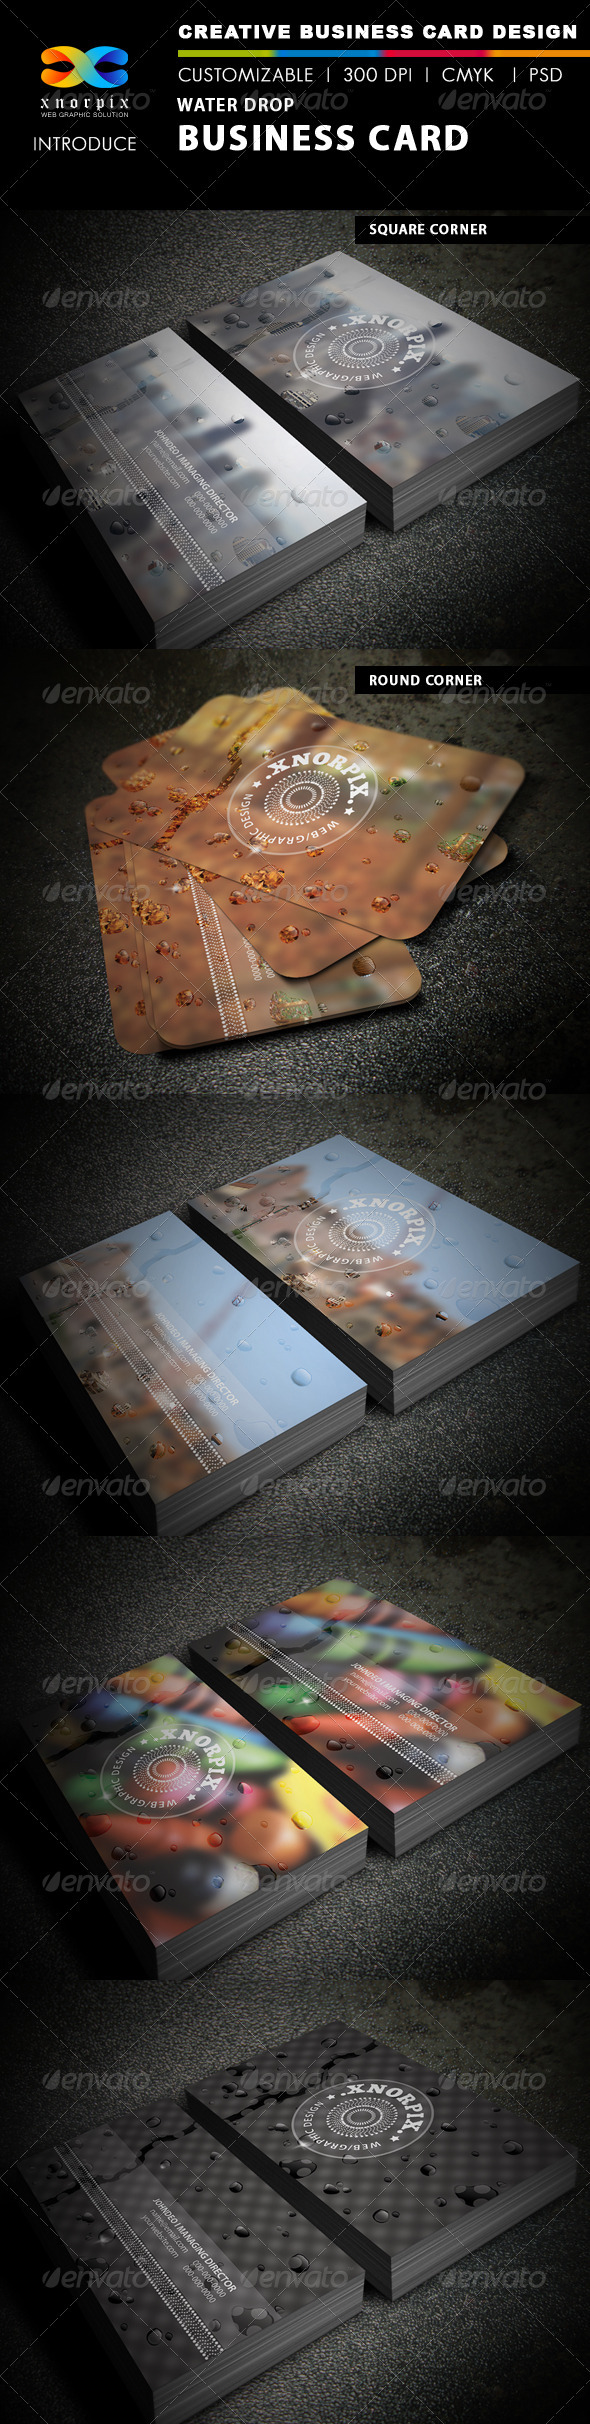 Water Drop Business Card - Creative Business Cards